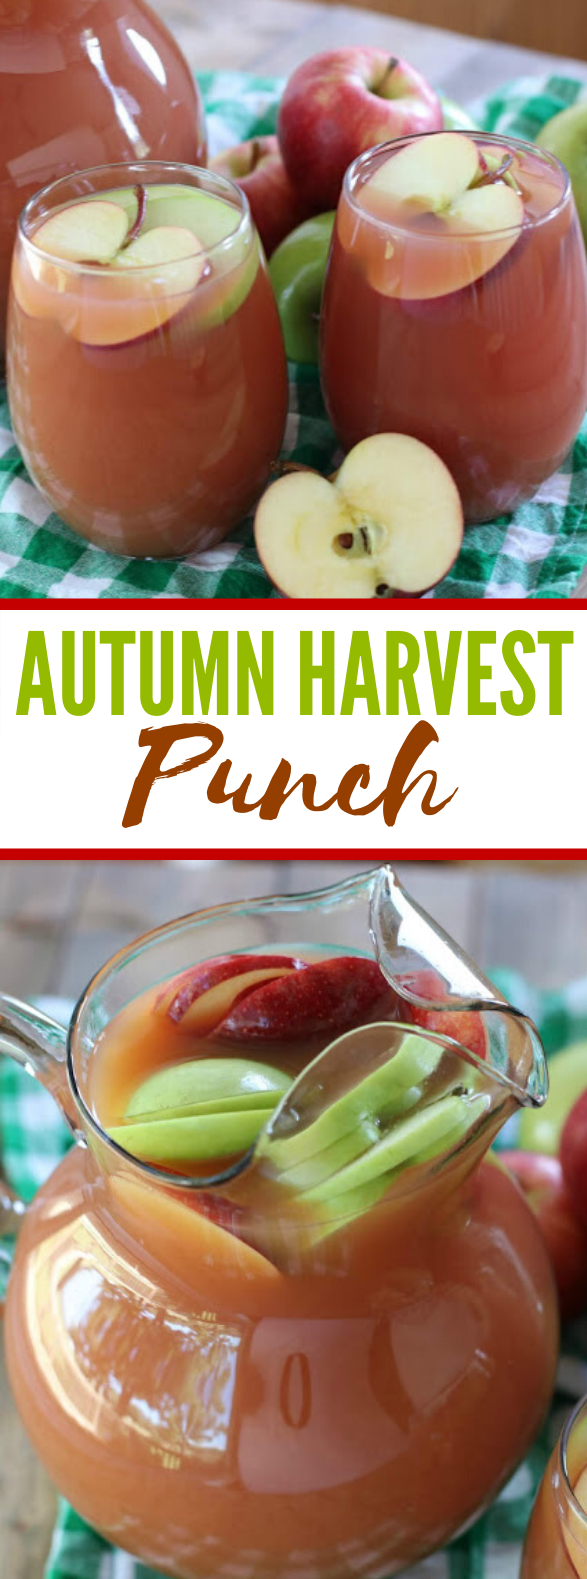 Autumn Harvest Punch #drinks #kidfriendly